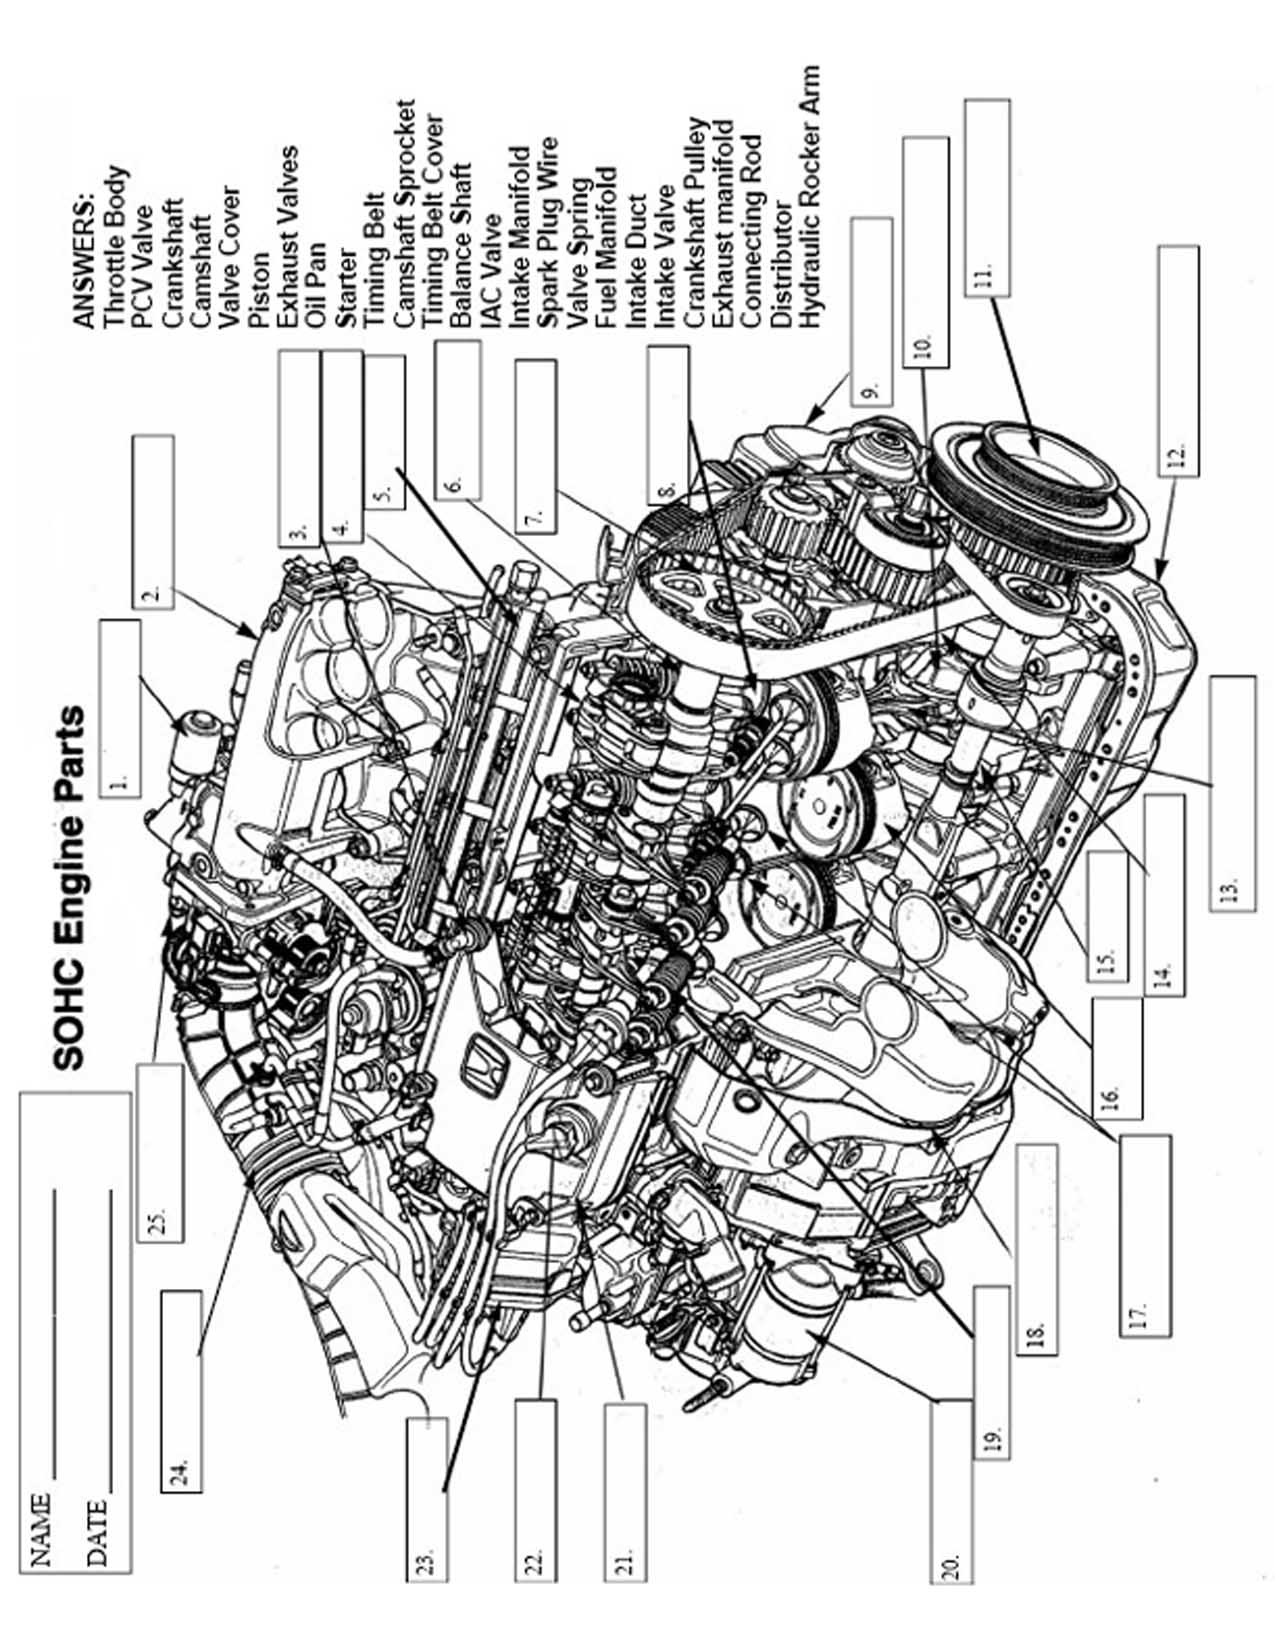 Free 1999 Mazda Protege Engine Diagrampdfoo Car And Autos